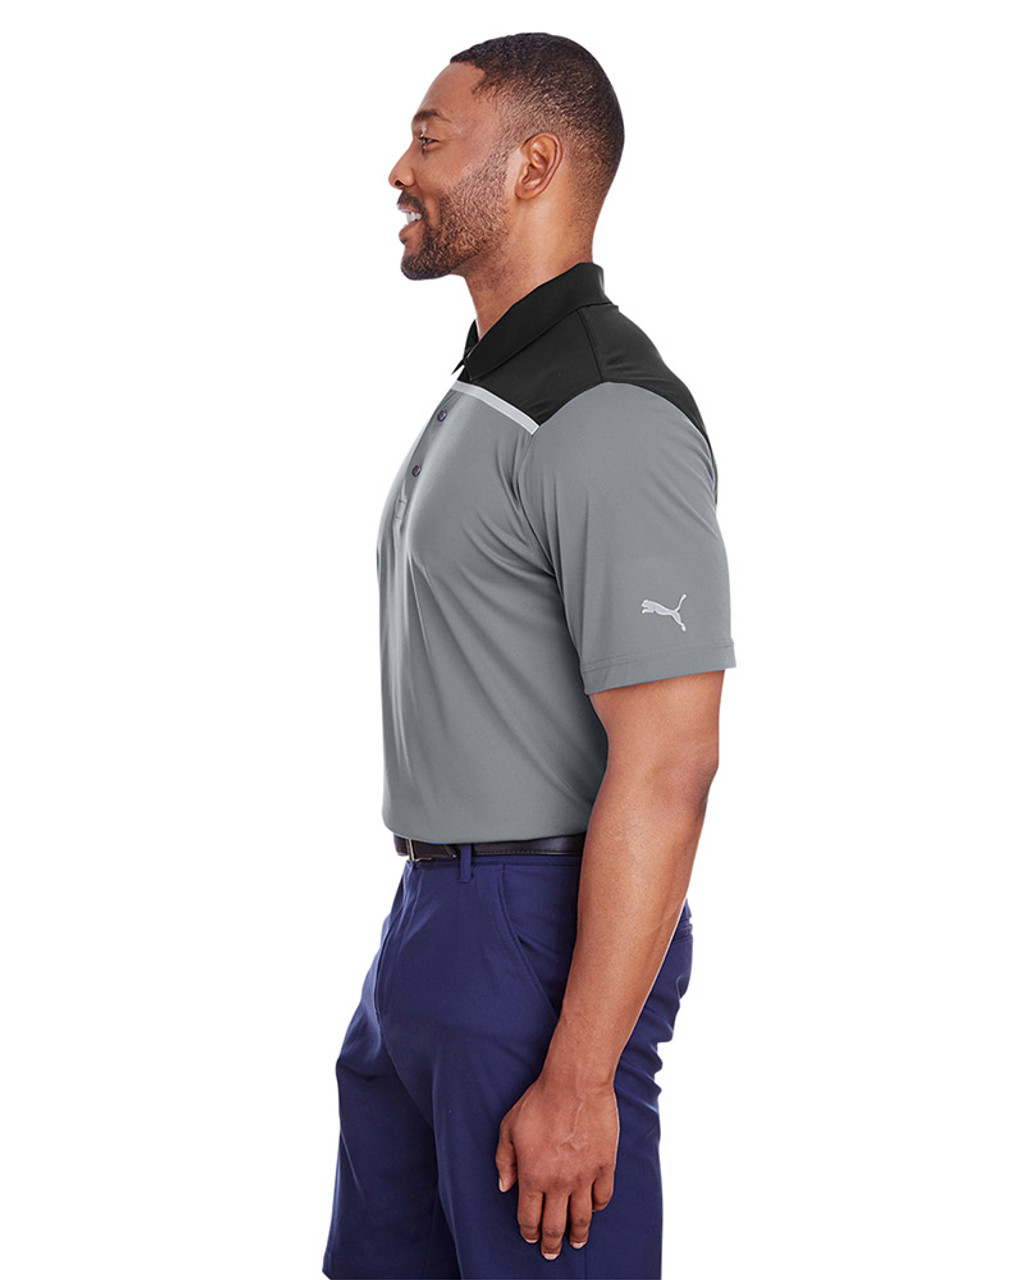 Quiet Shade/Puma Black - side, 596805 Puma Golf Men's Bonded Colorblock Polo | Blankclothing.ca